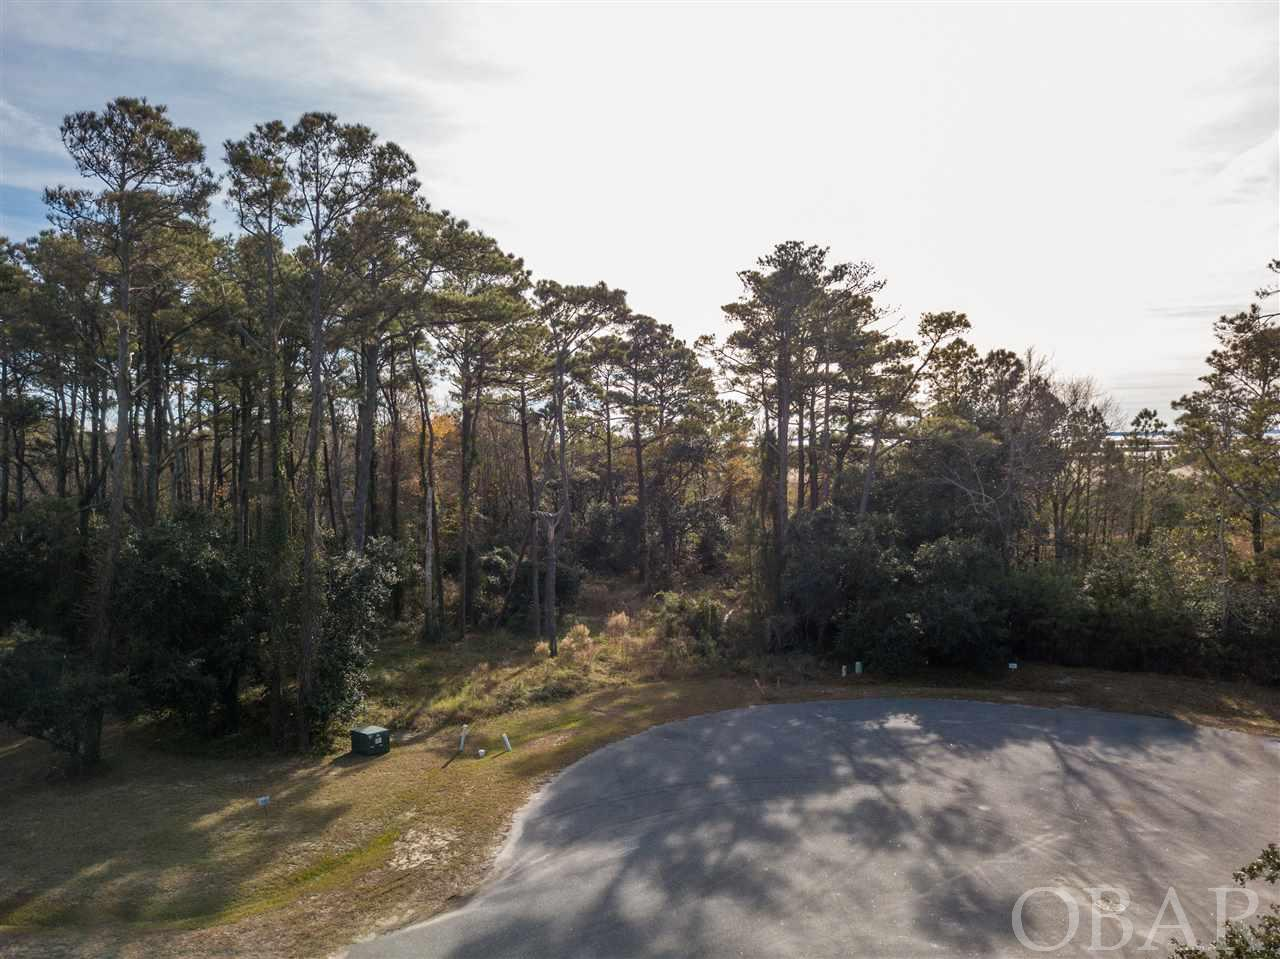 1286 Lost Lake Lane,Corolla,NC 27927,Lots/land,Lost Lake Lane,102943